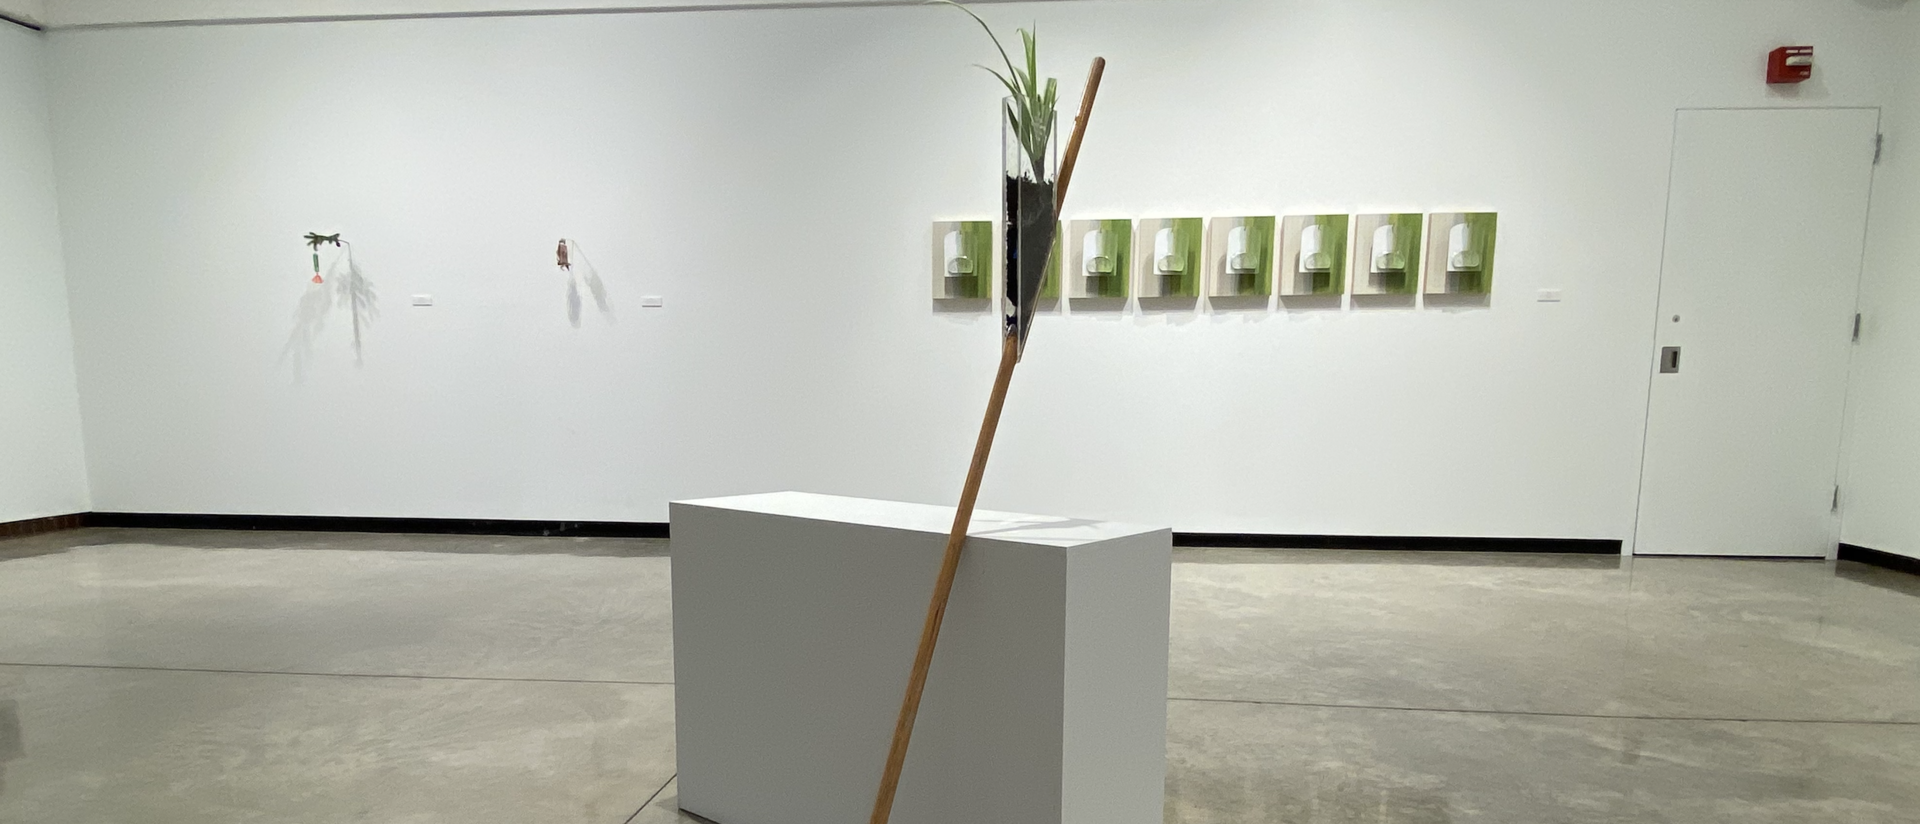 """View of """"I Make This, You Make That"""" art exhibition in the Foster Gallery. It shows a sculpture of a broom with a plant growing in a plexi glass container attached to the broom handle."""